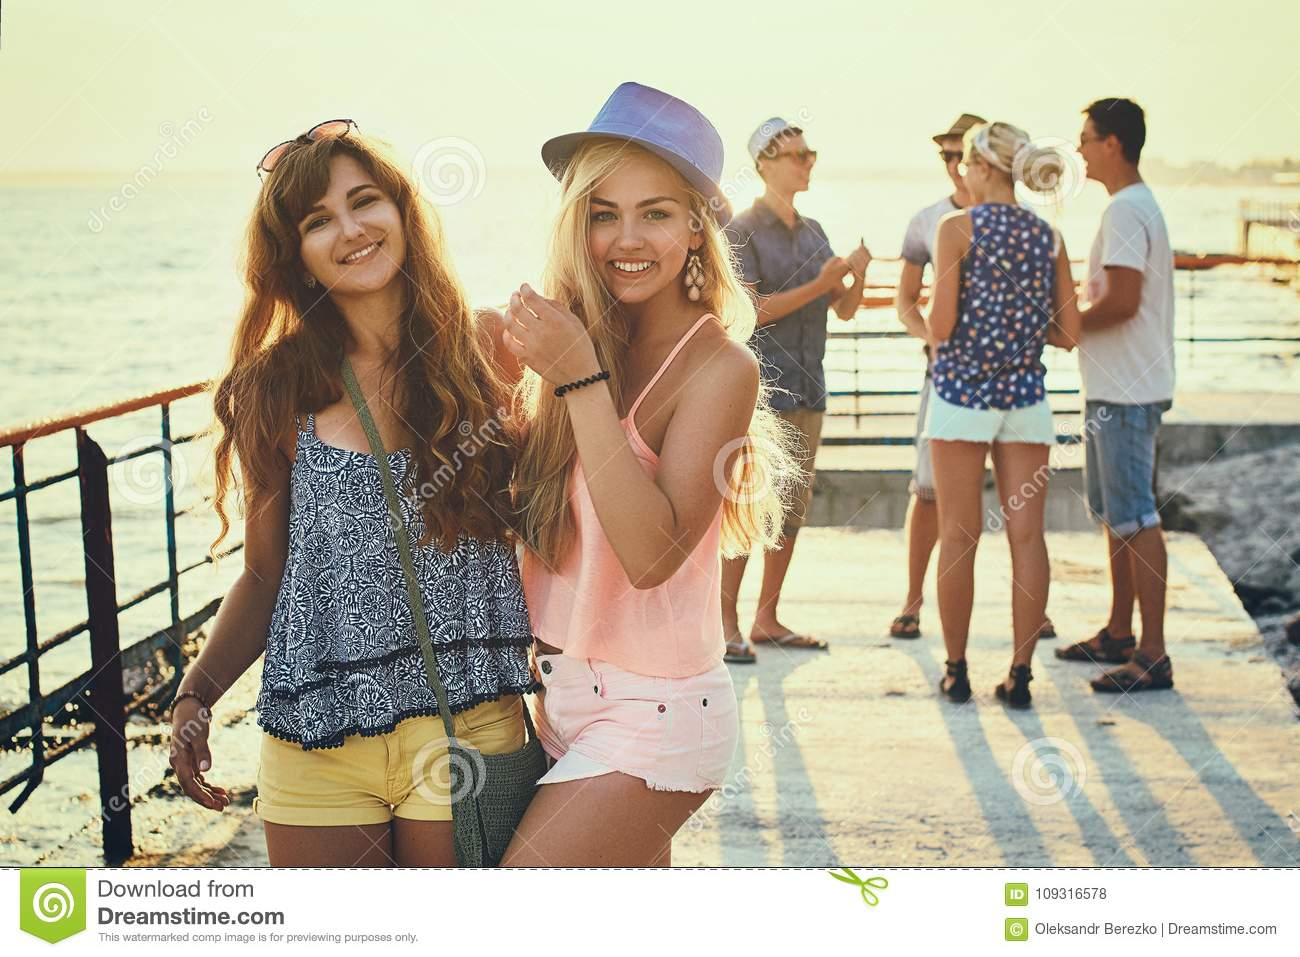 Two beautiful young girls having fun at the evening seaside with group of their friends on background toned in vintage